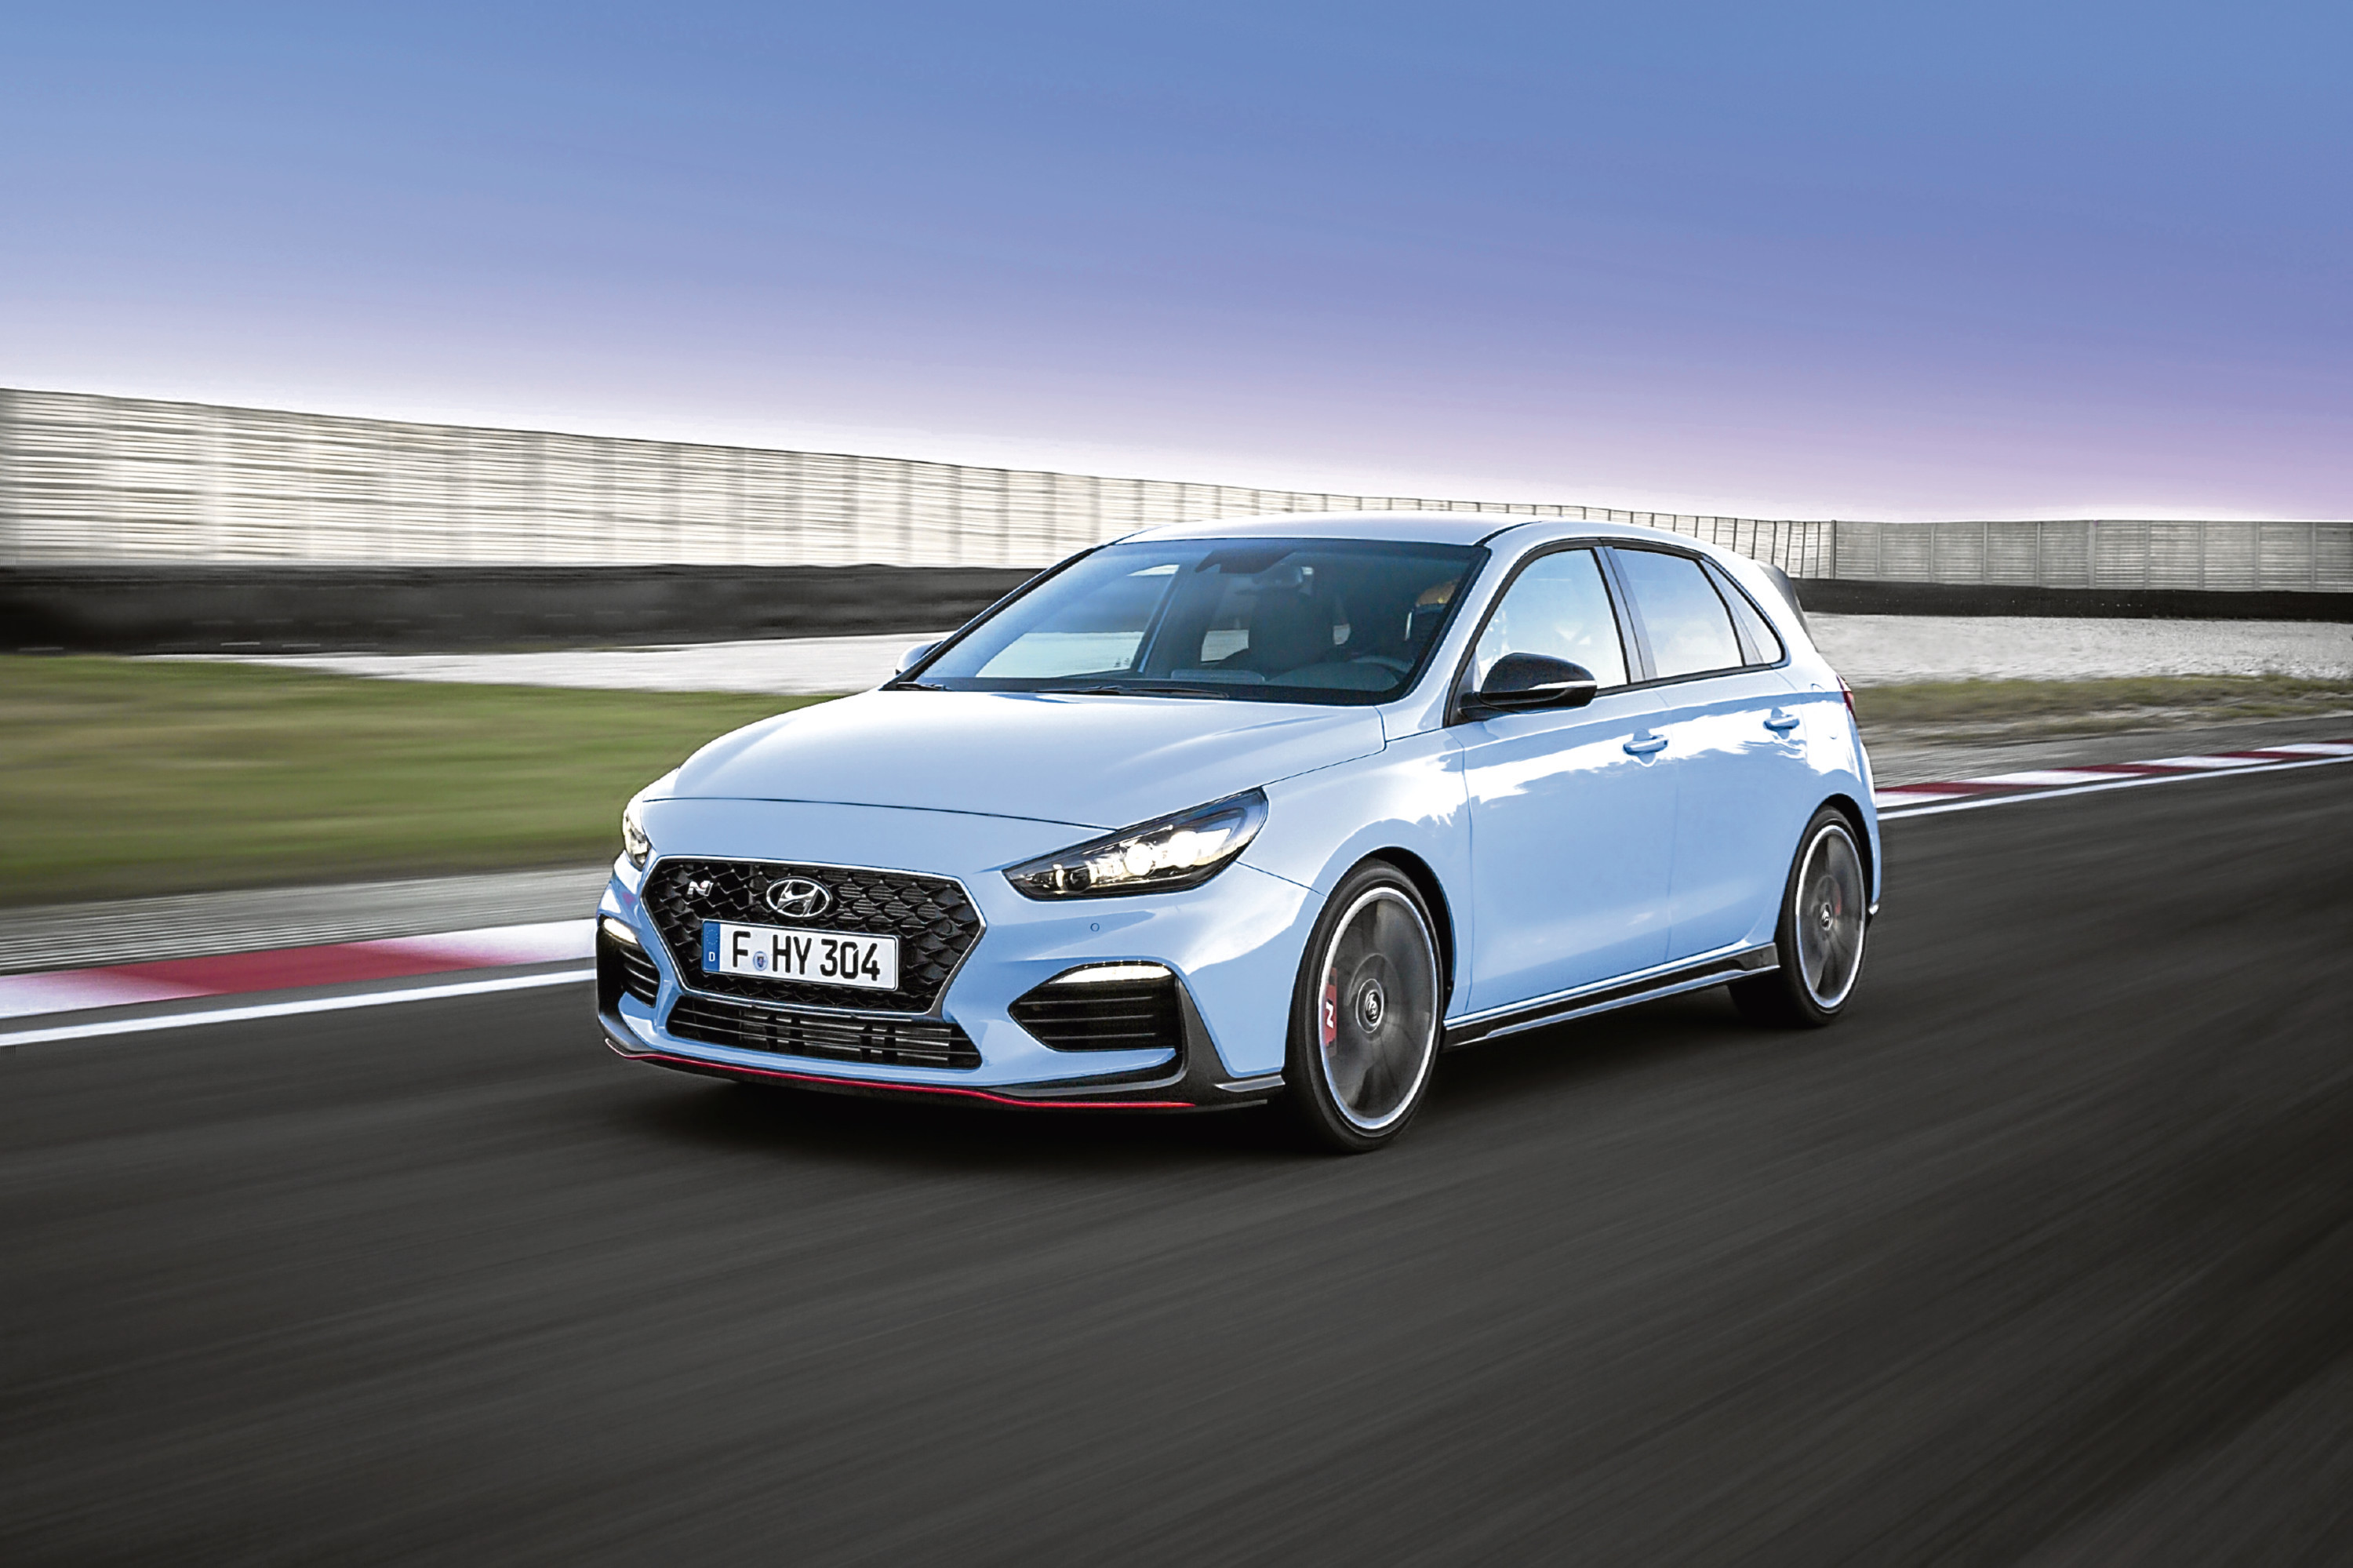 Undated Handout Photo: Hyundai reveals UK pricing and specification for i30 N hot hatch. See PA Feature MOTORING News. Picture credit should read: PA Photo/Handout. WARNING: This picture must only be used to accompany PA Feature MOTORING News.